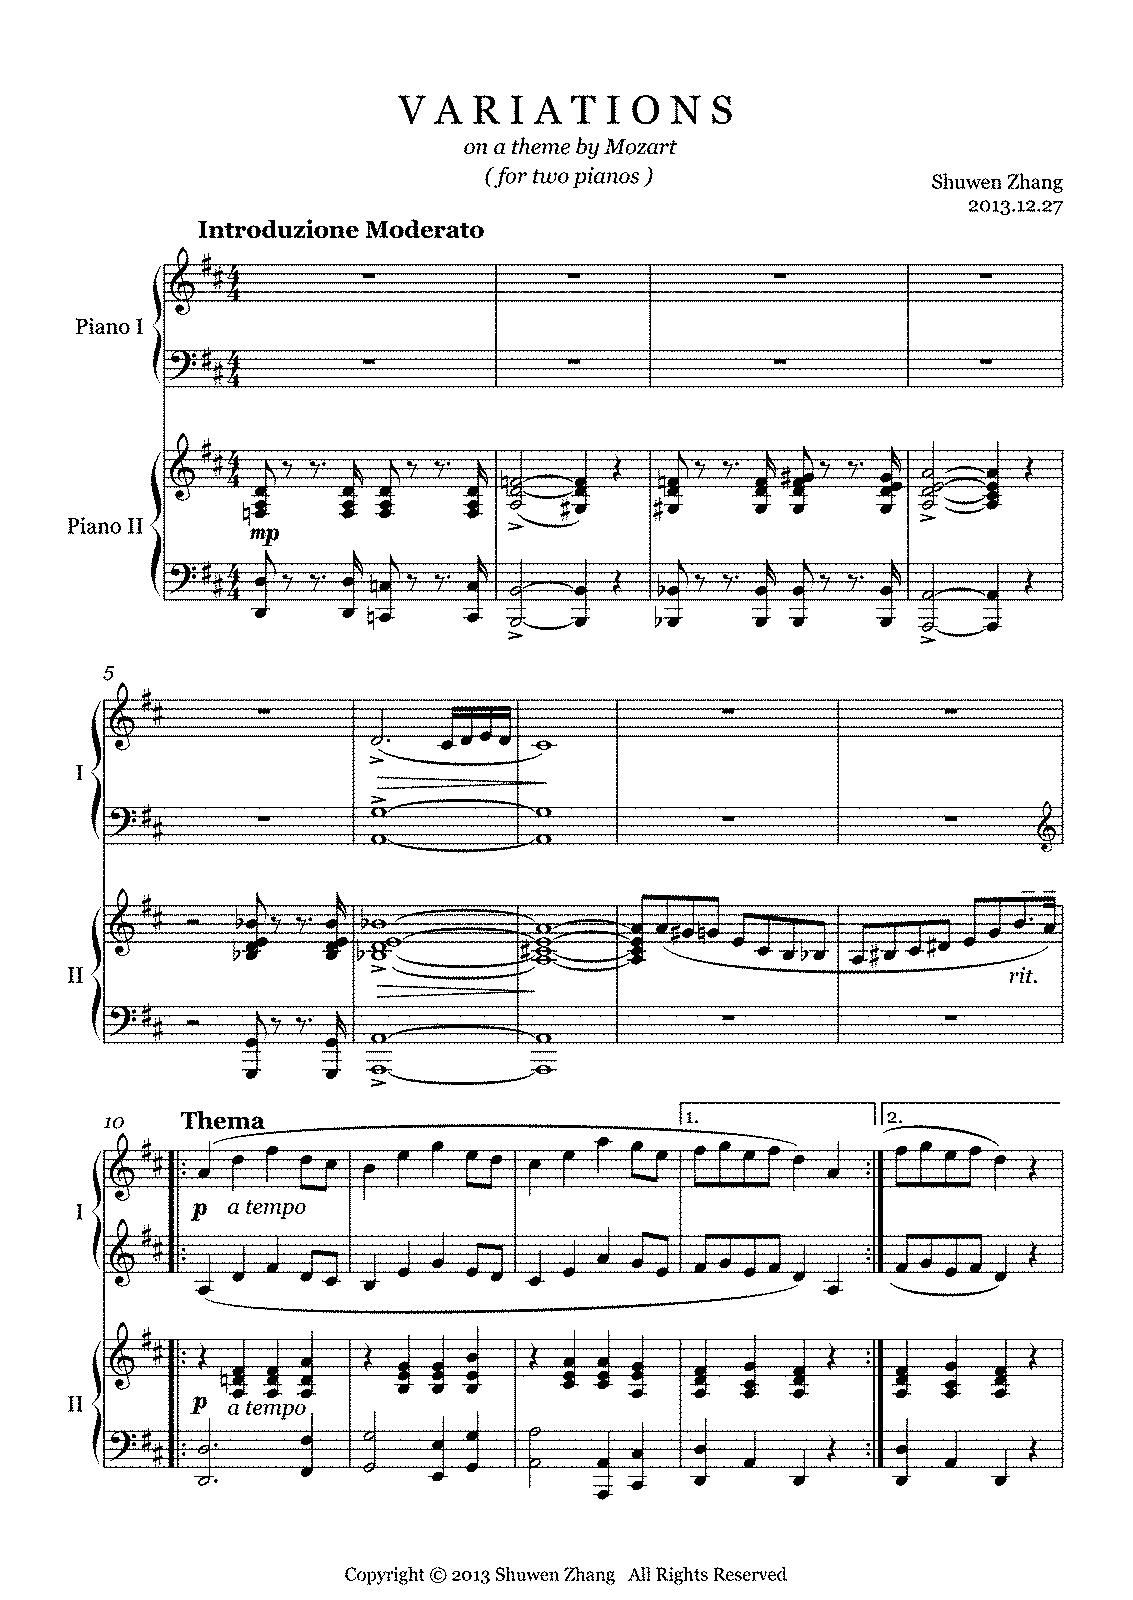 PMLP587752-Variations in D major on a theme by Mozart for two pianos-总 - Full Score.pdf